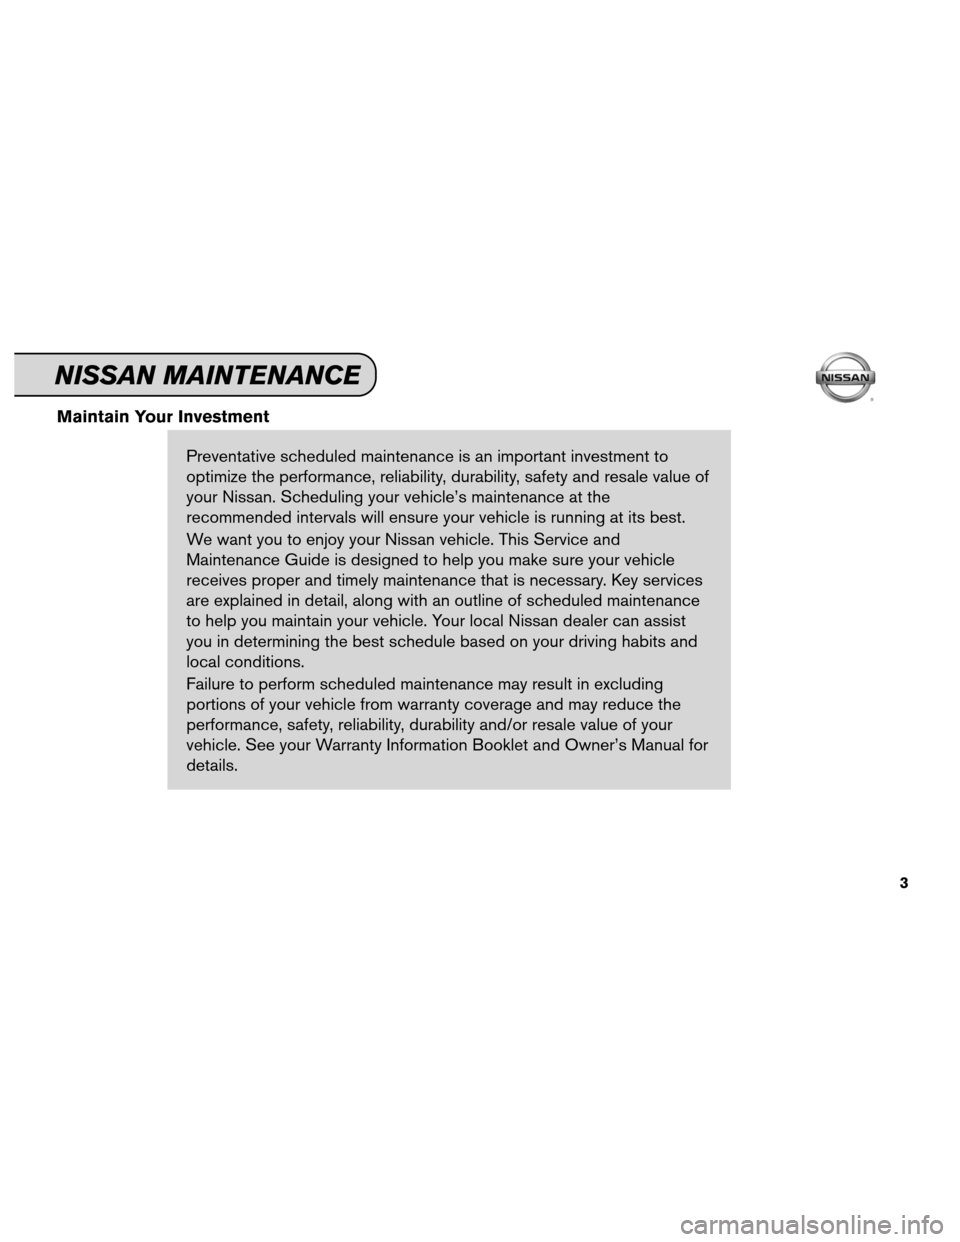 NISSAN VERSA 2012 1.G Service And Maintenance Guide Maintain Your InvestmentPreventative scheduled maintenance is an important investment to optimize the performance, reliability, durability, safety and resale value of your Nissan. Scheduling your vehi